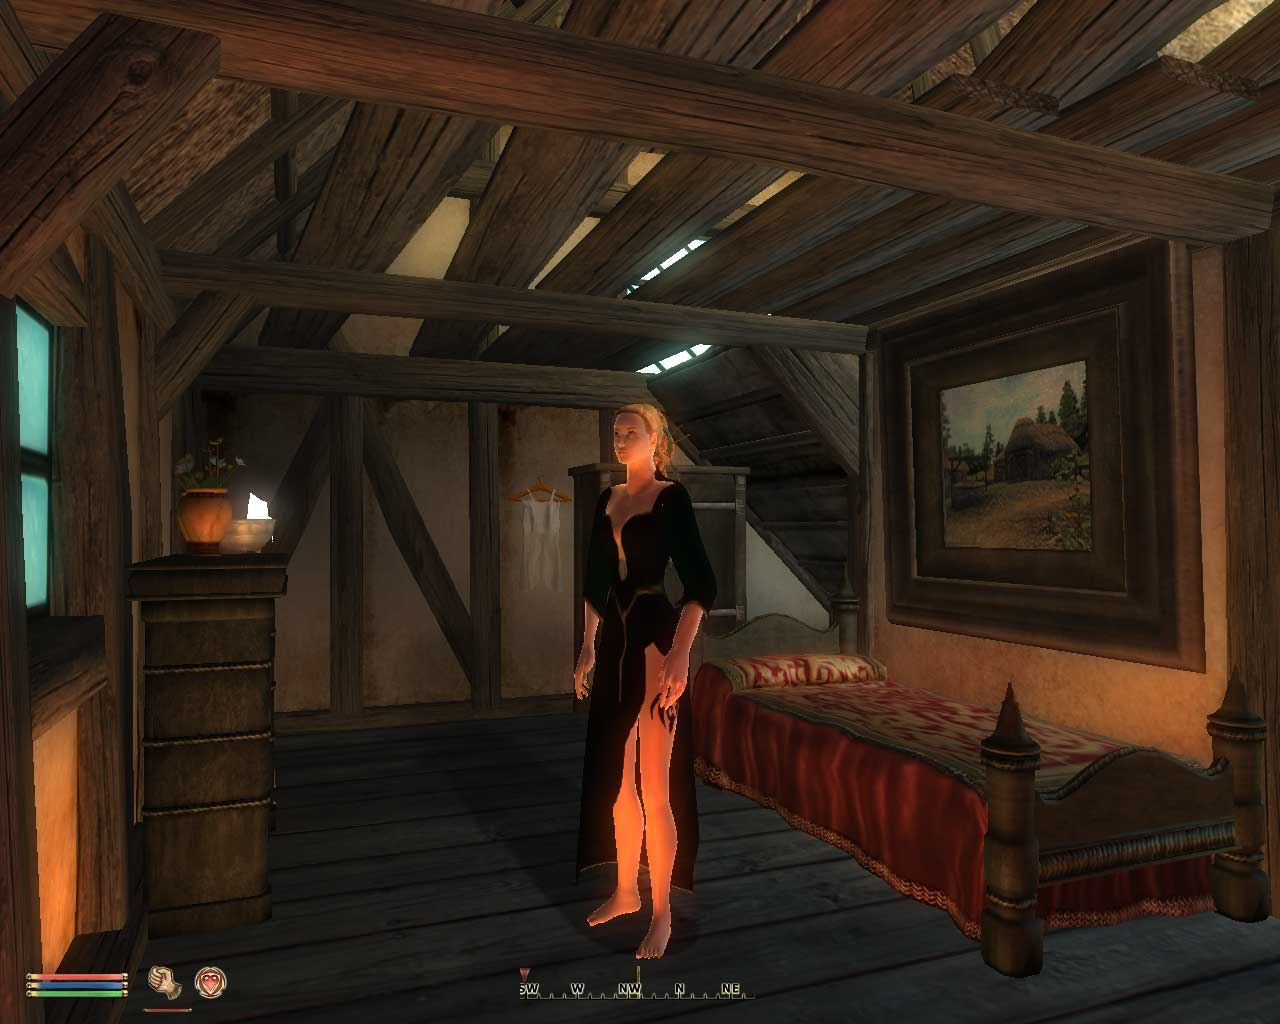 oblivion dating mod The blockbuster the elder scrolls iv: oblivion provides a leap forward in role-playing with its combination of freeform gameplay and cutting-edge graphics for the world under the elder scrolls.